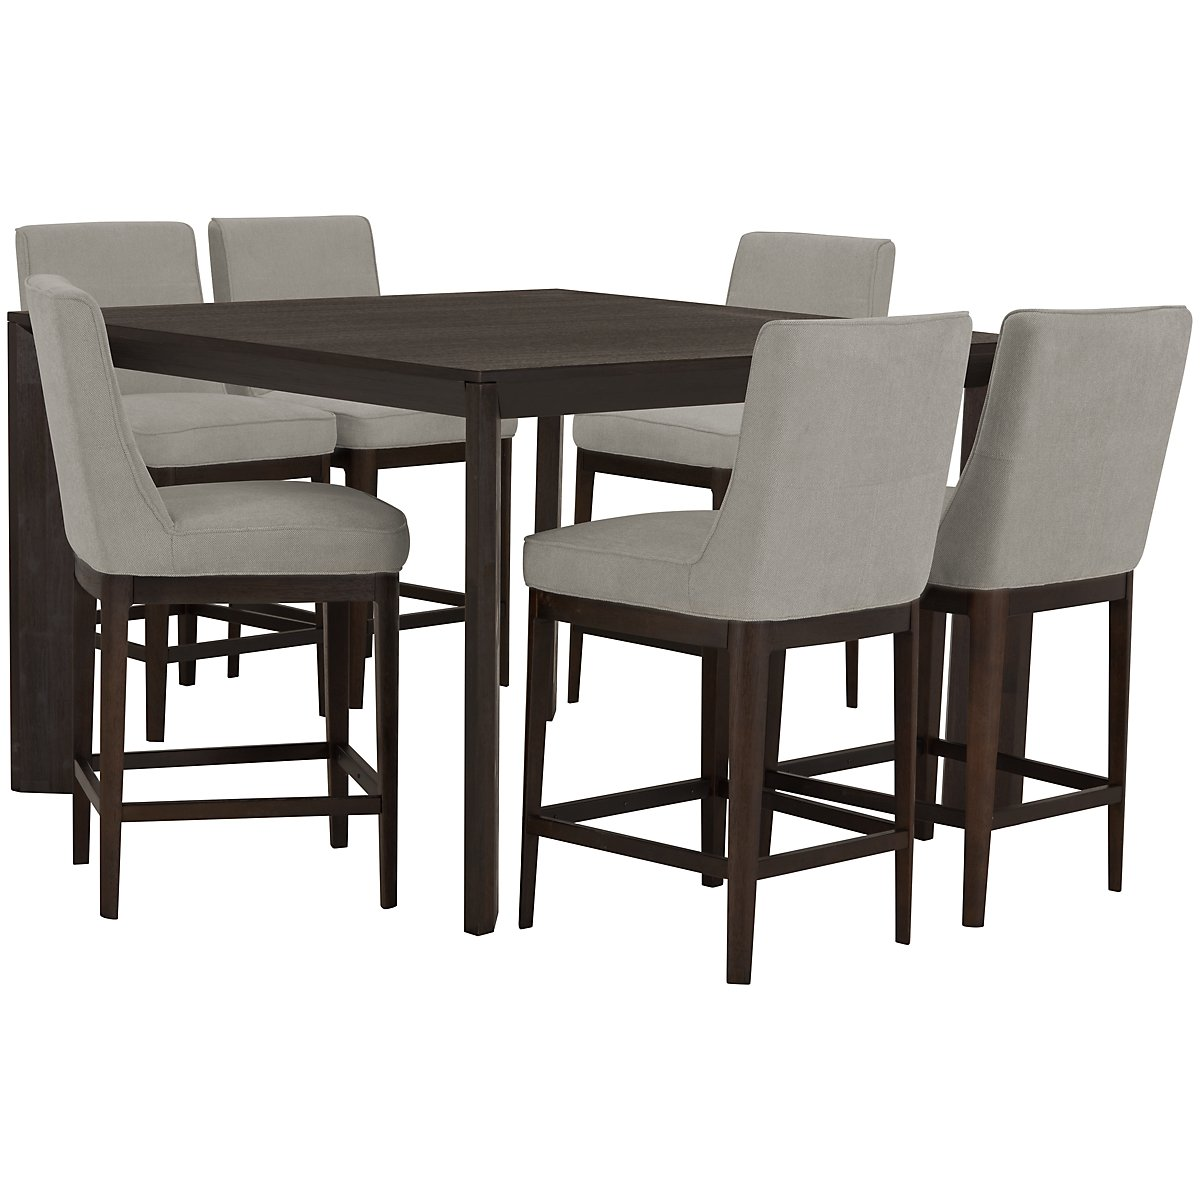 City furniture rylan dark tone high dining table for High dining table